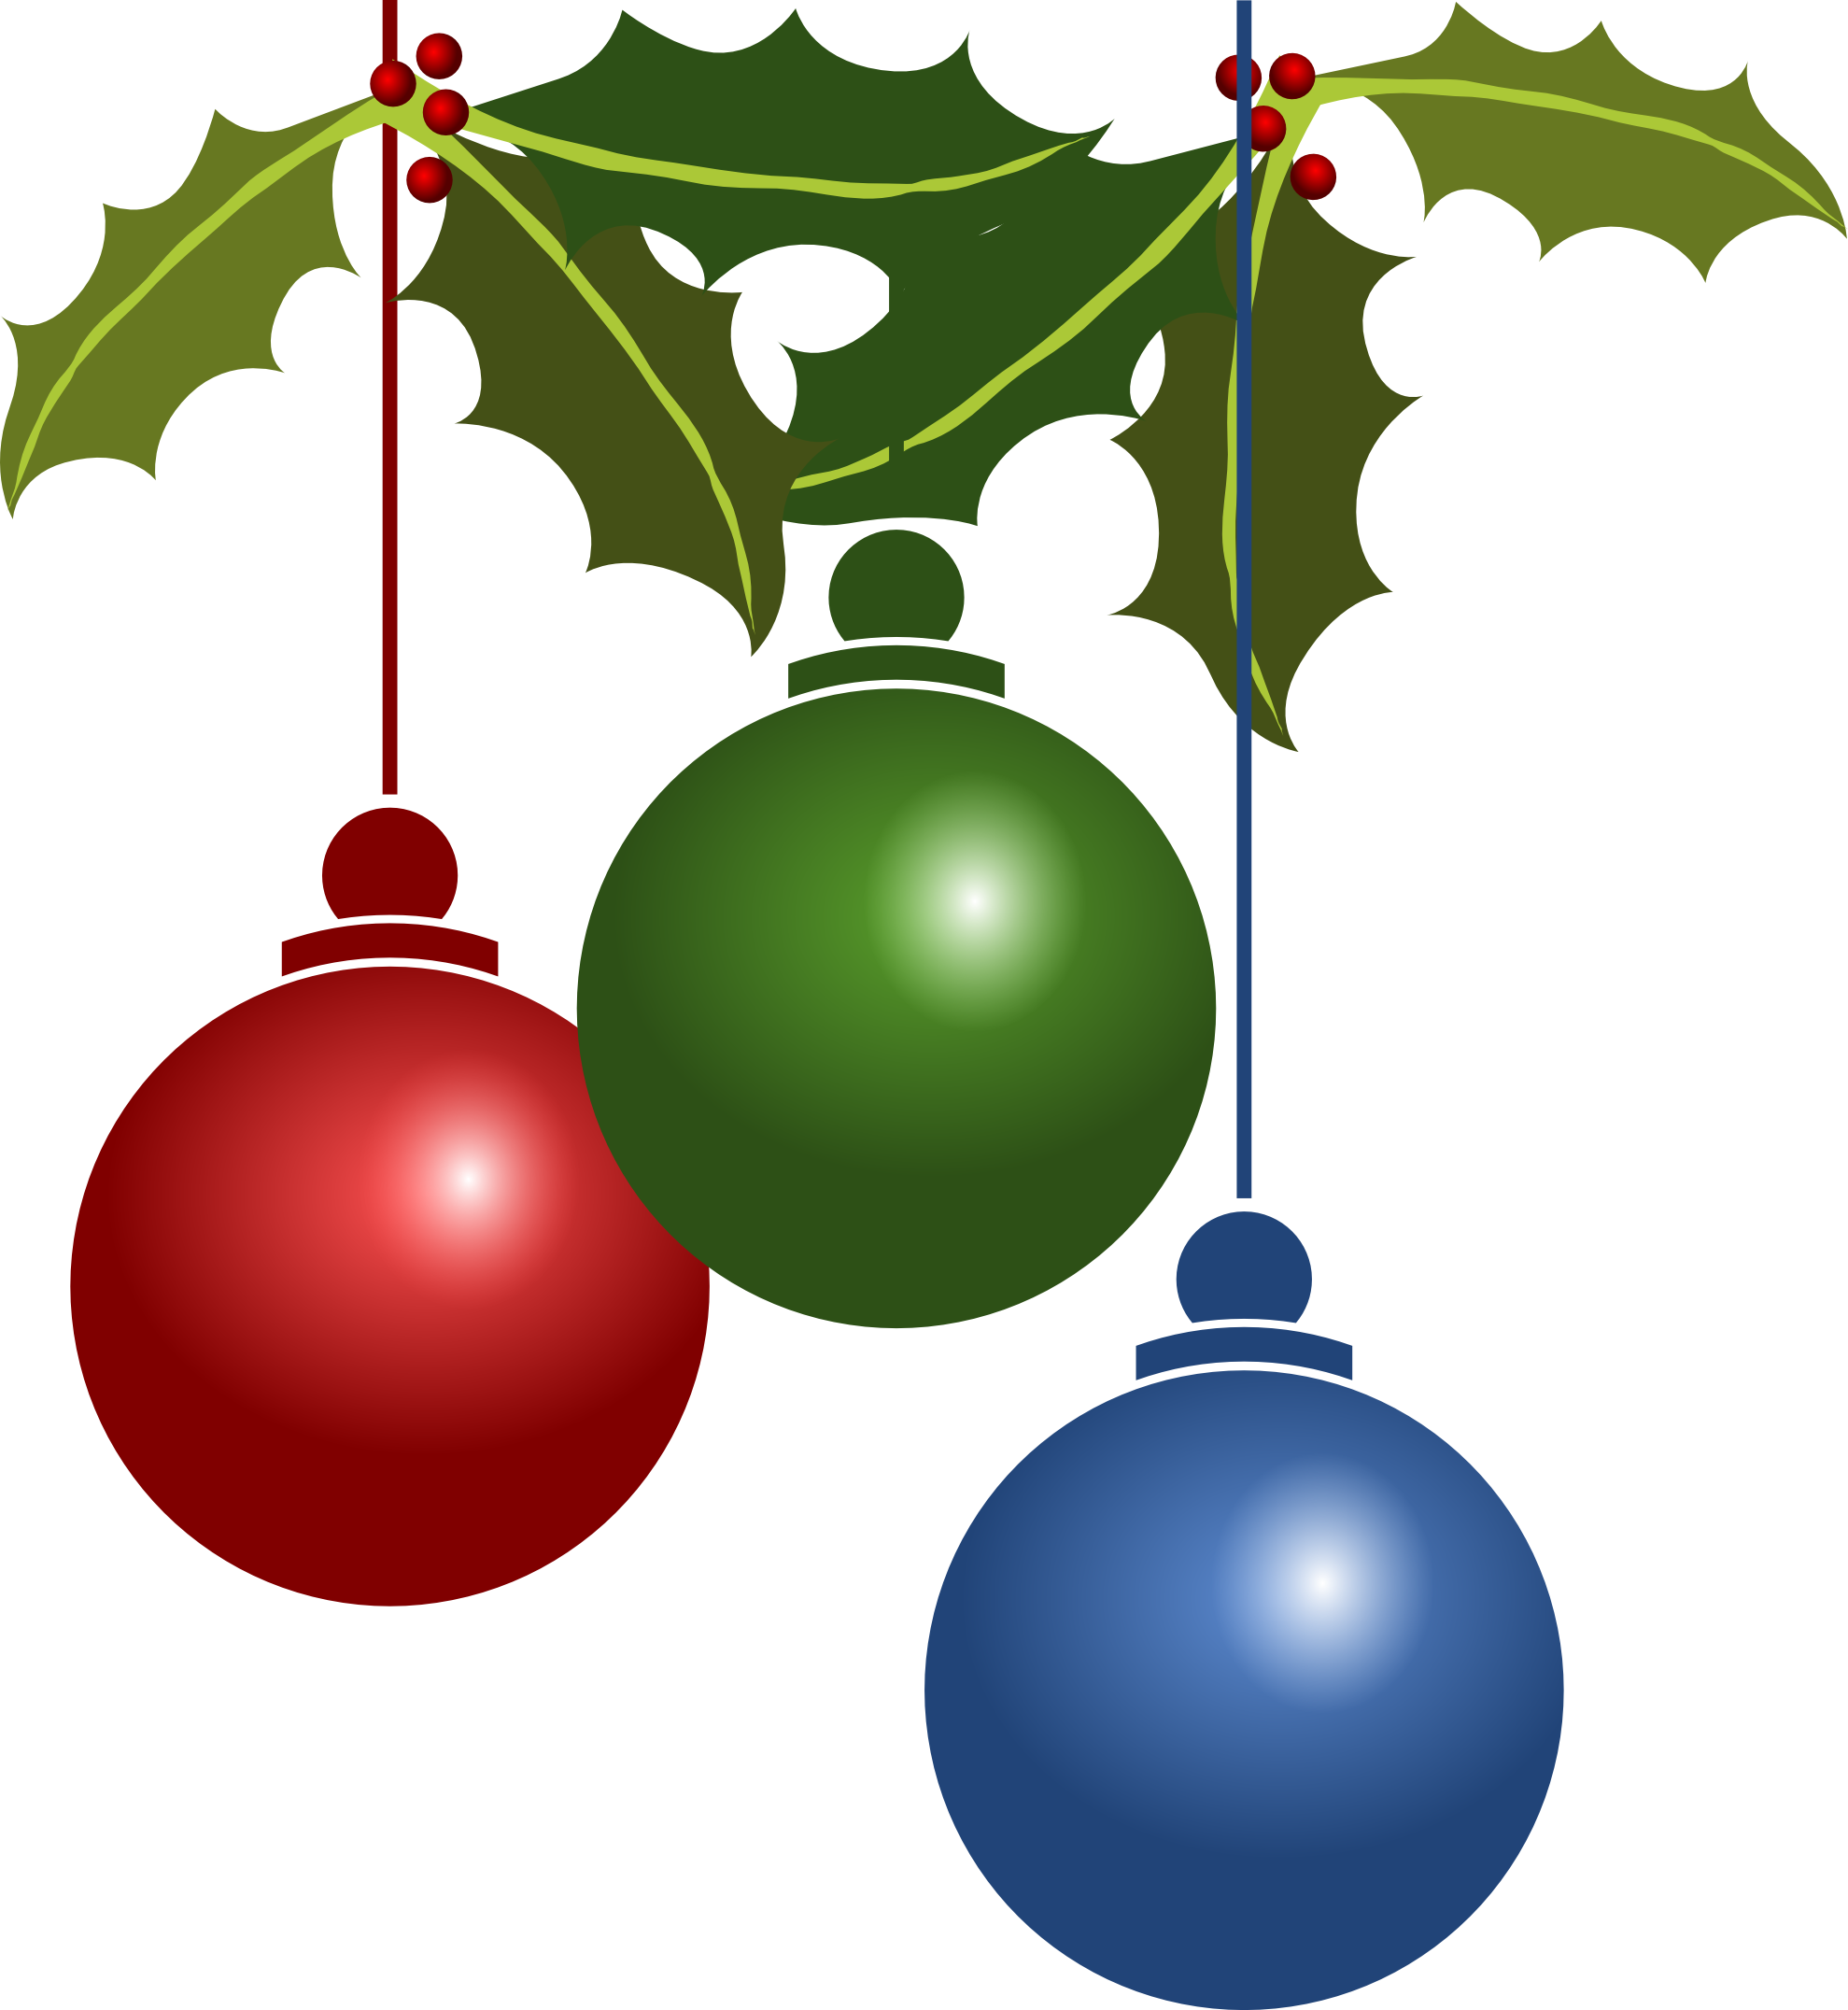 Free christmas party clipart transparent library Christmas Ornaments Clipart & Look At Christmas Ornaments Clip Art ... transparent library